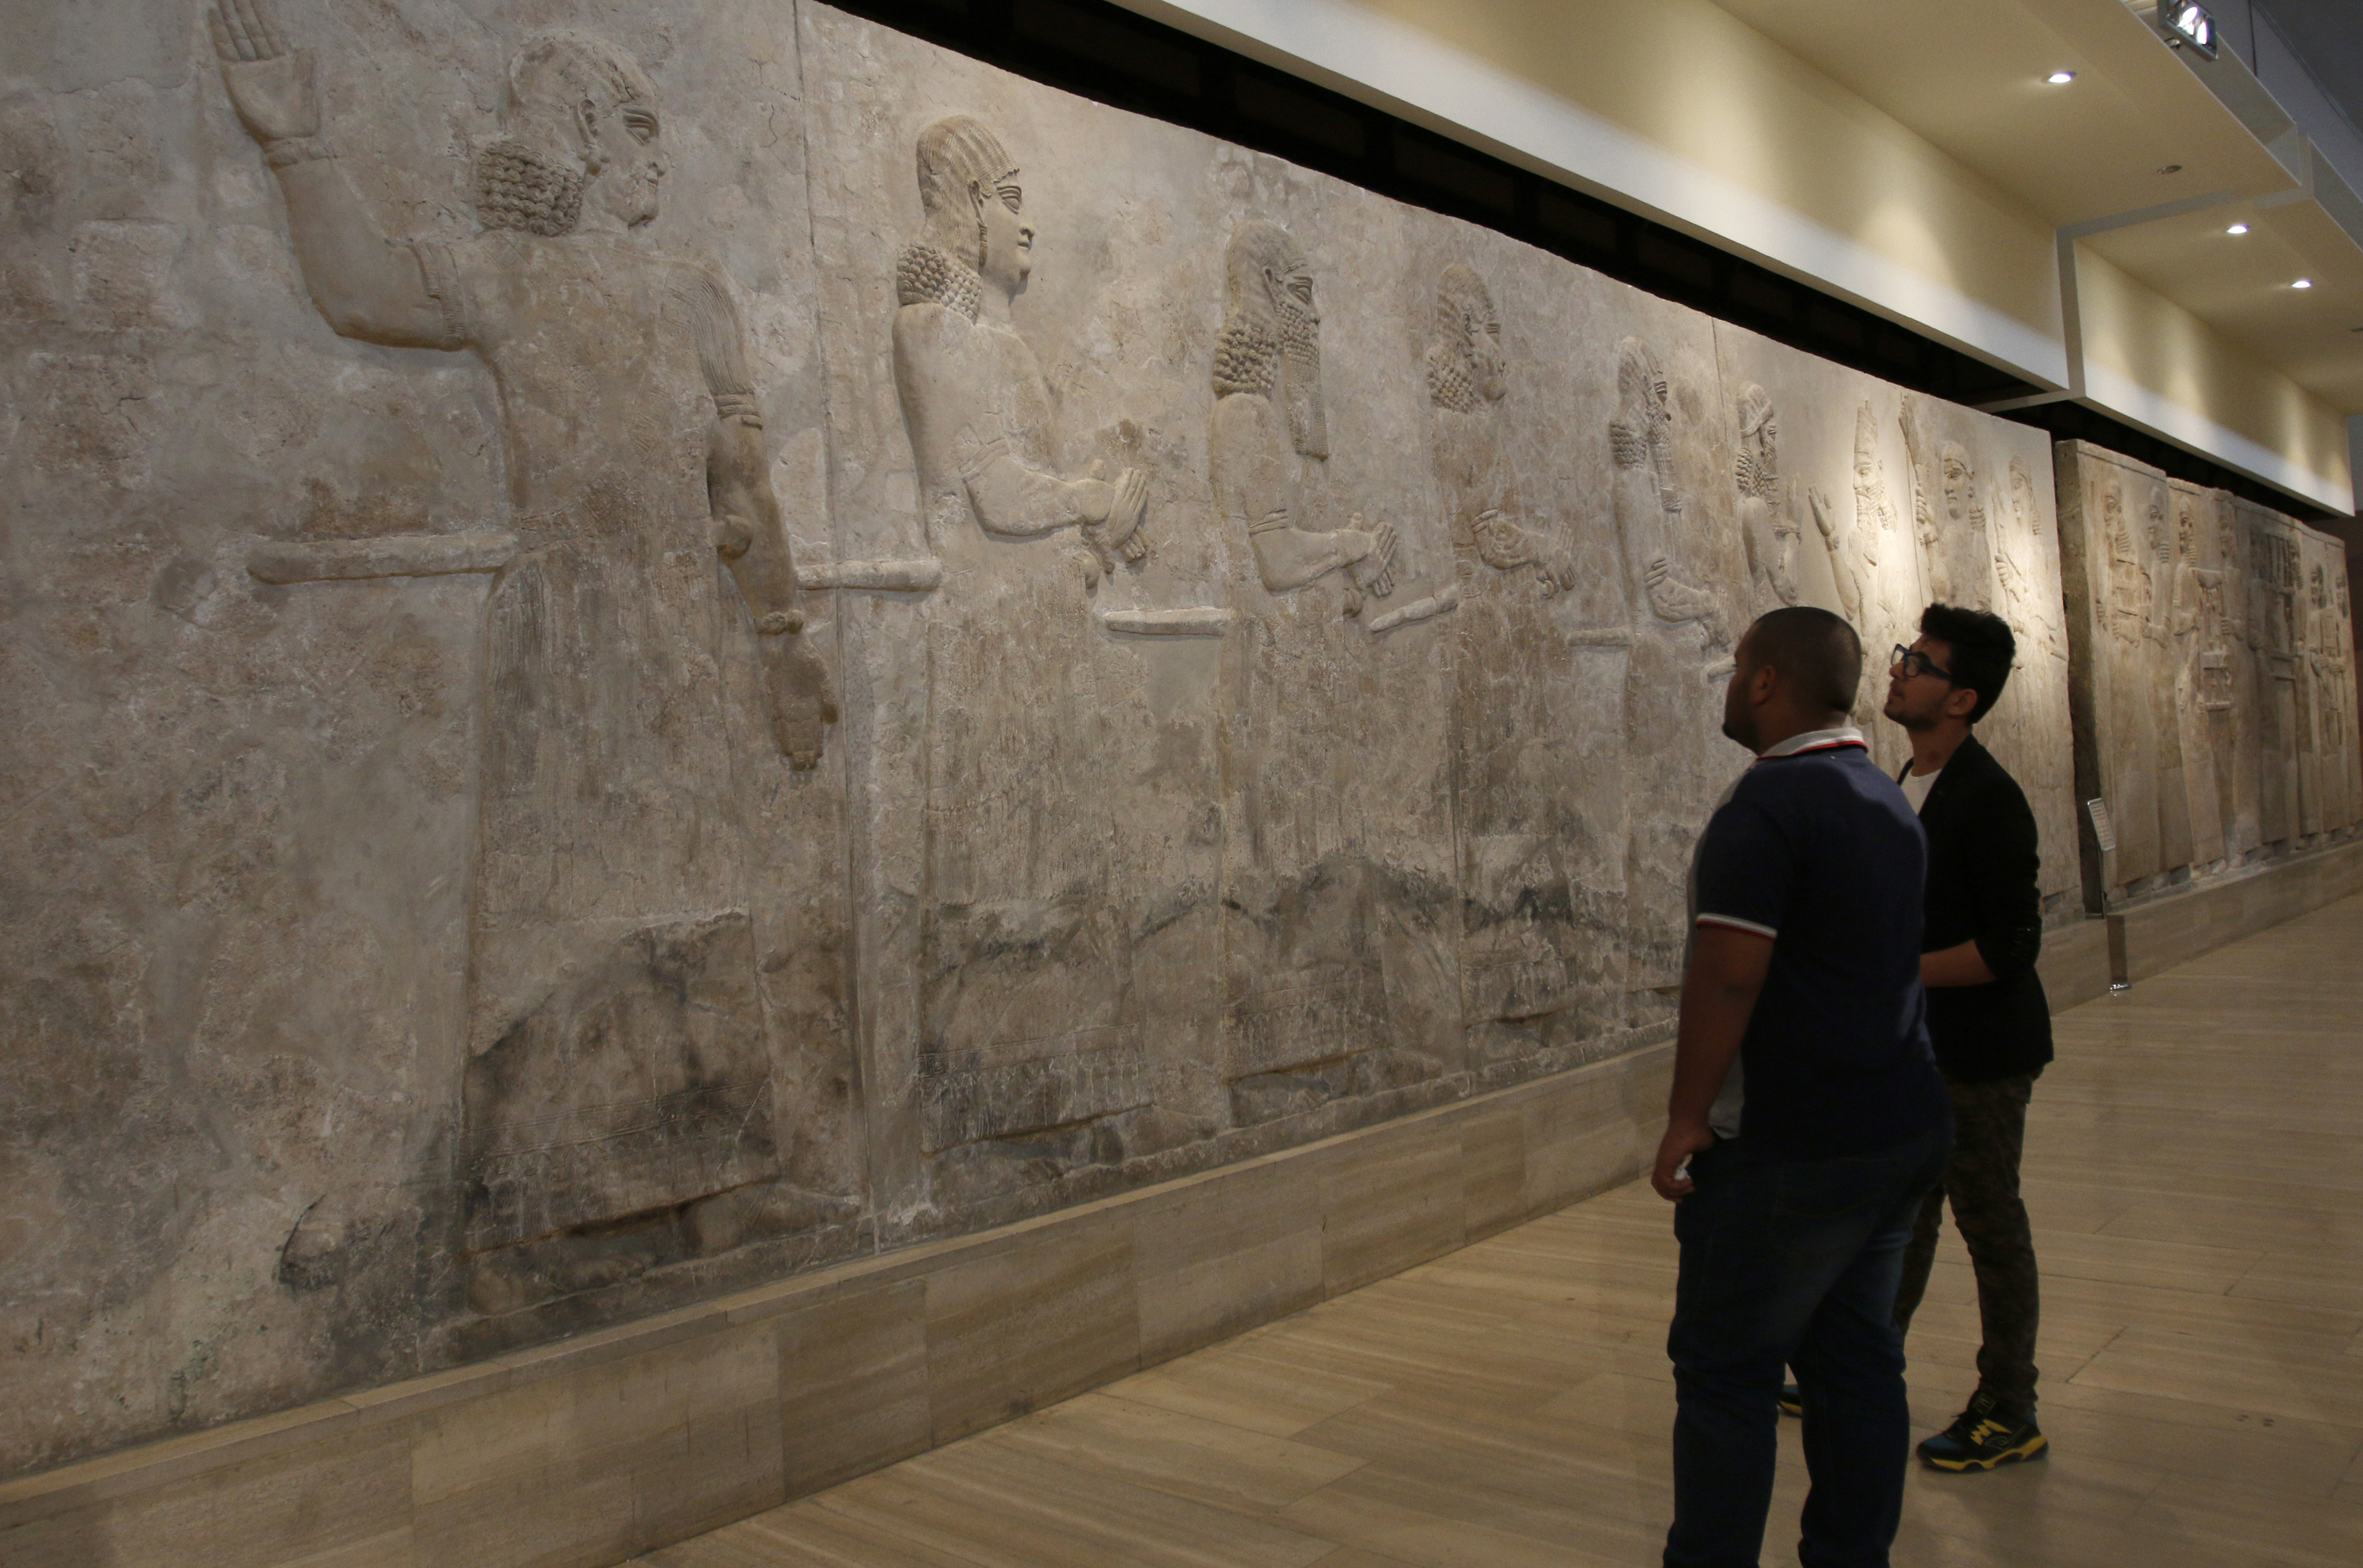 Visitors look at Assyrian mural sculptures at the Iraqi National Museum in Baghdad, March 8, 2015. Islamic State militants have desecrated Assyrian relics and ancient sites. Photo by Khalid al-Mousily/Reuters